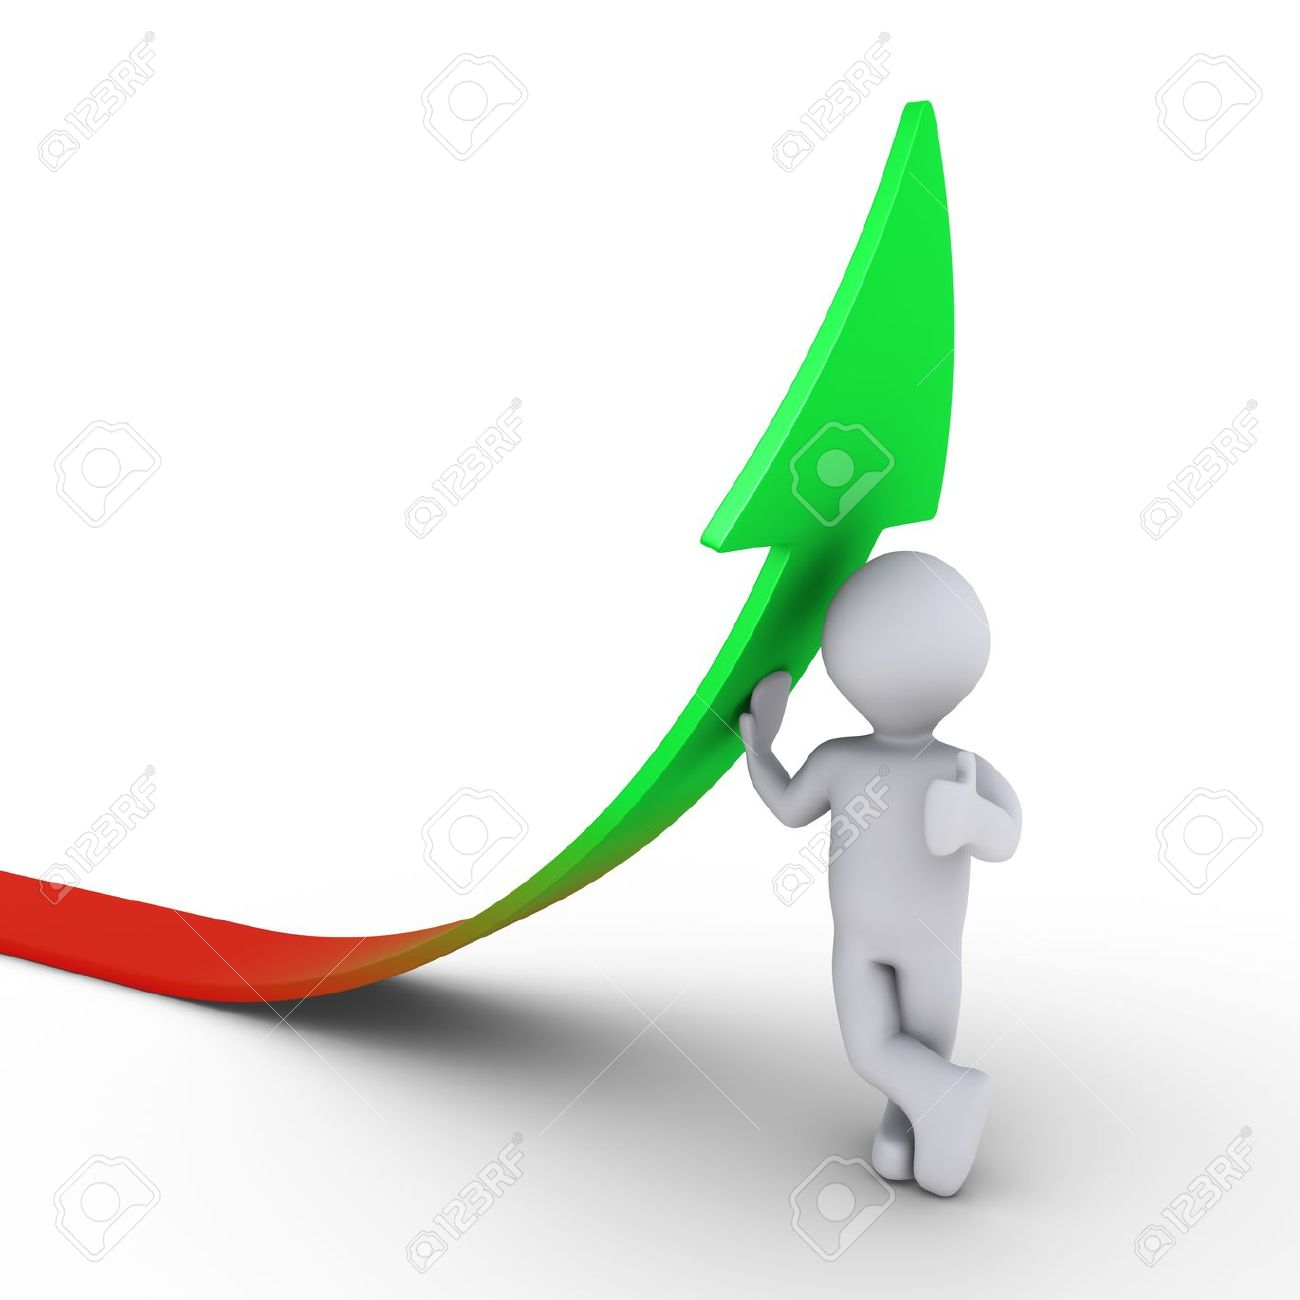 Rising arrow clipart graphic royalty free stock 3d Person Leaning On A Rising Graph Arrow Stock Photo, Picture And ... graphic royalty free stock